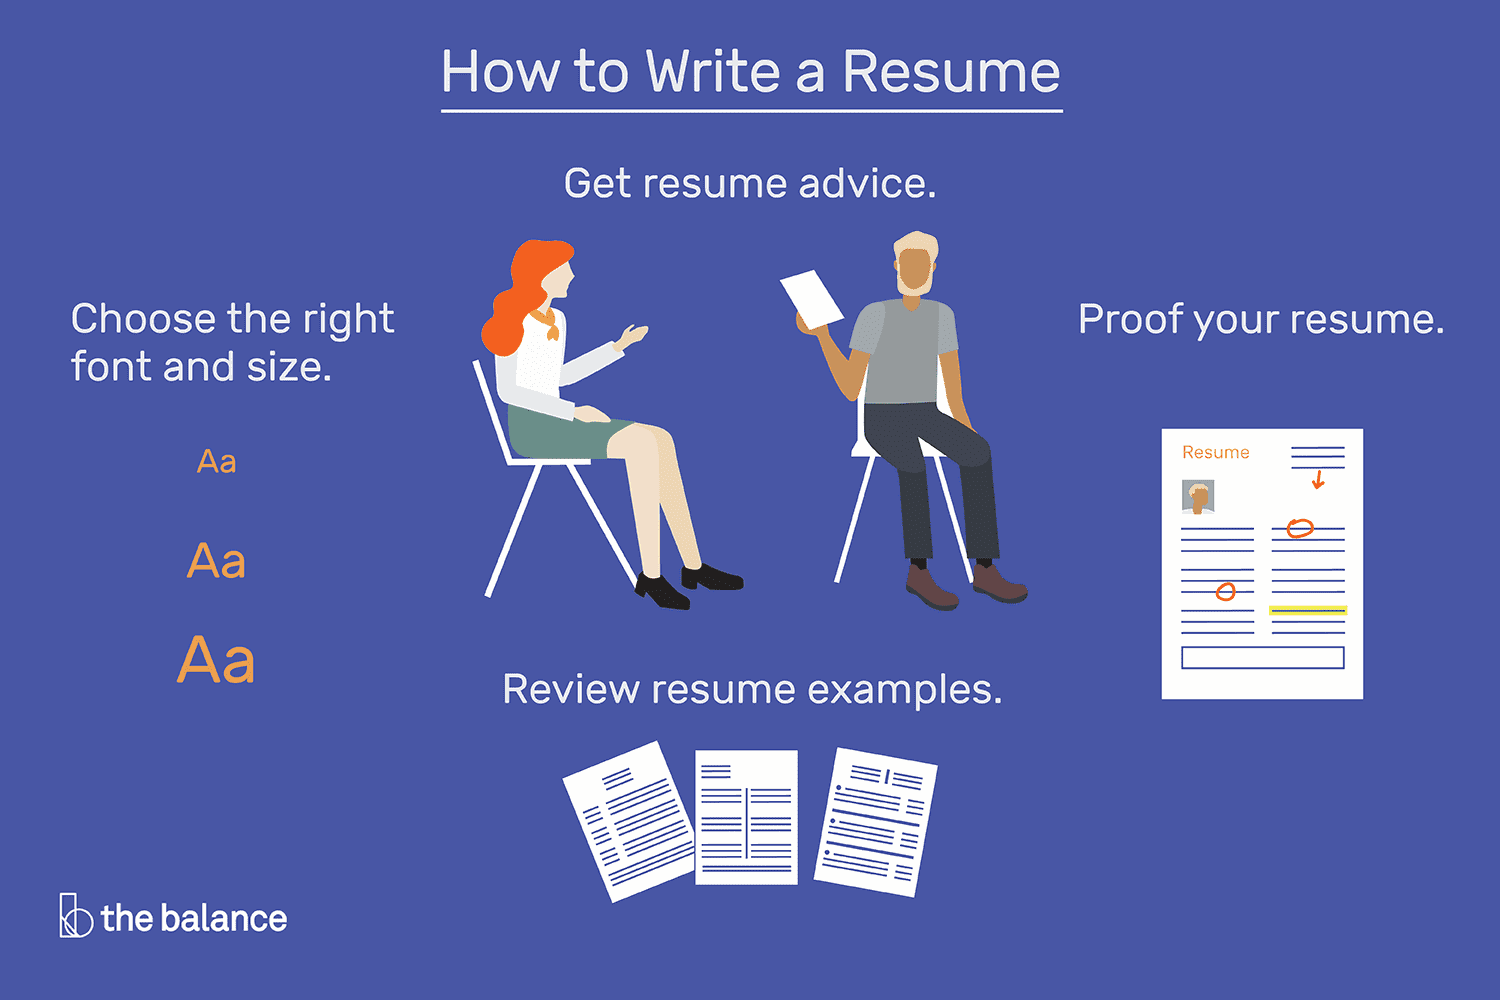 5 Amazing Tips For a Winning Resume